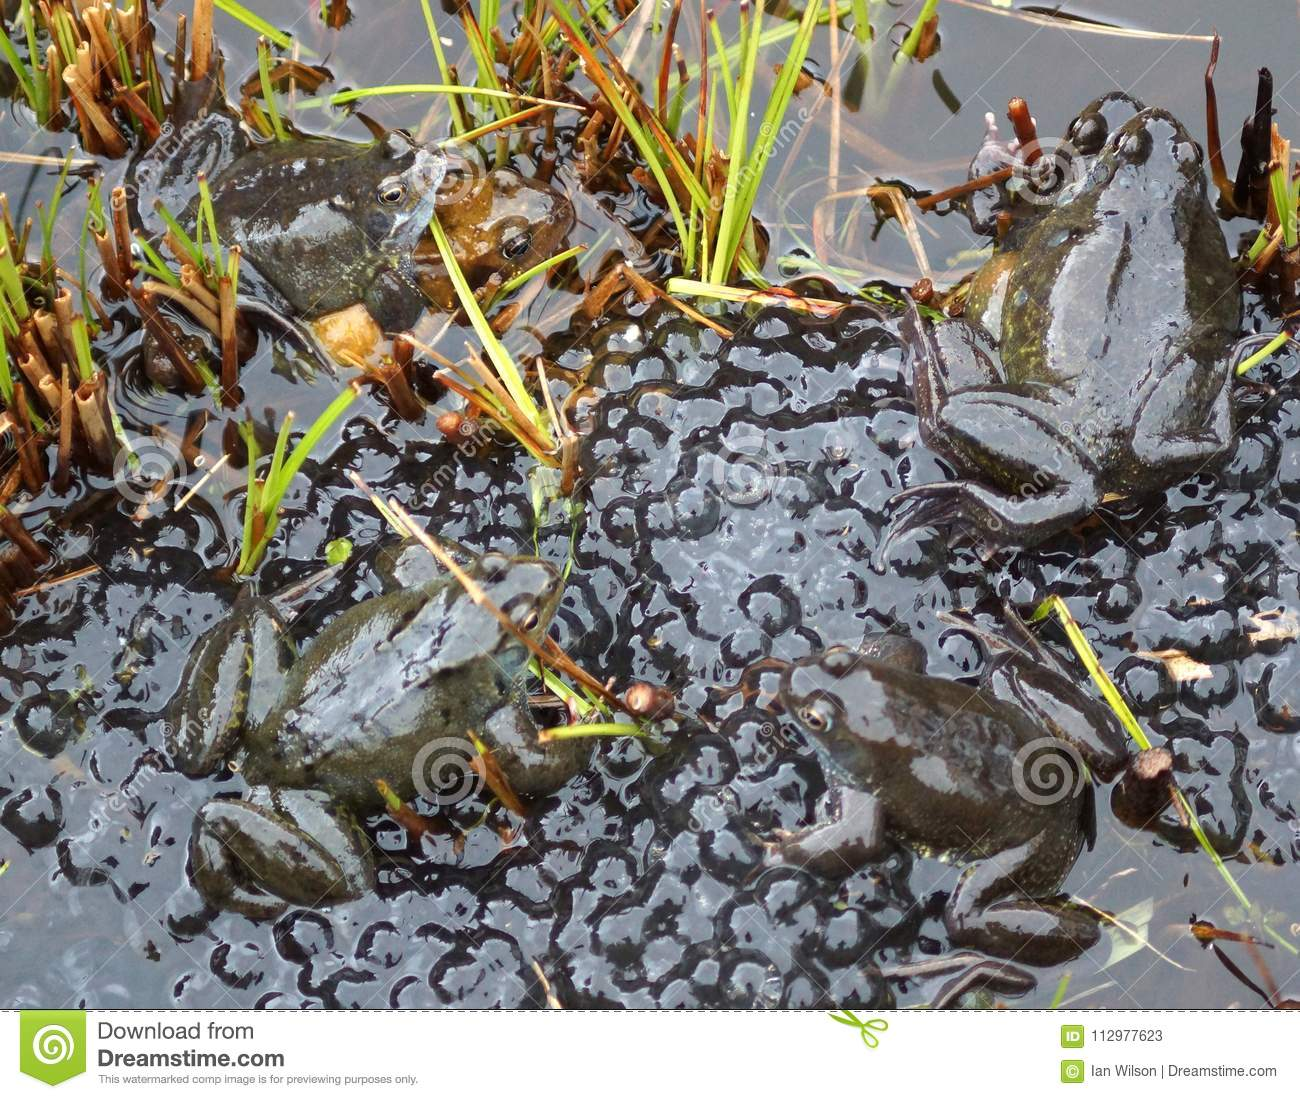 Frogs spawning in a Pond